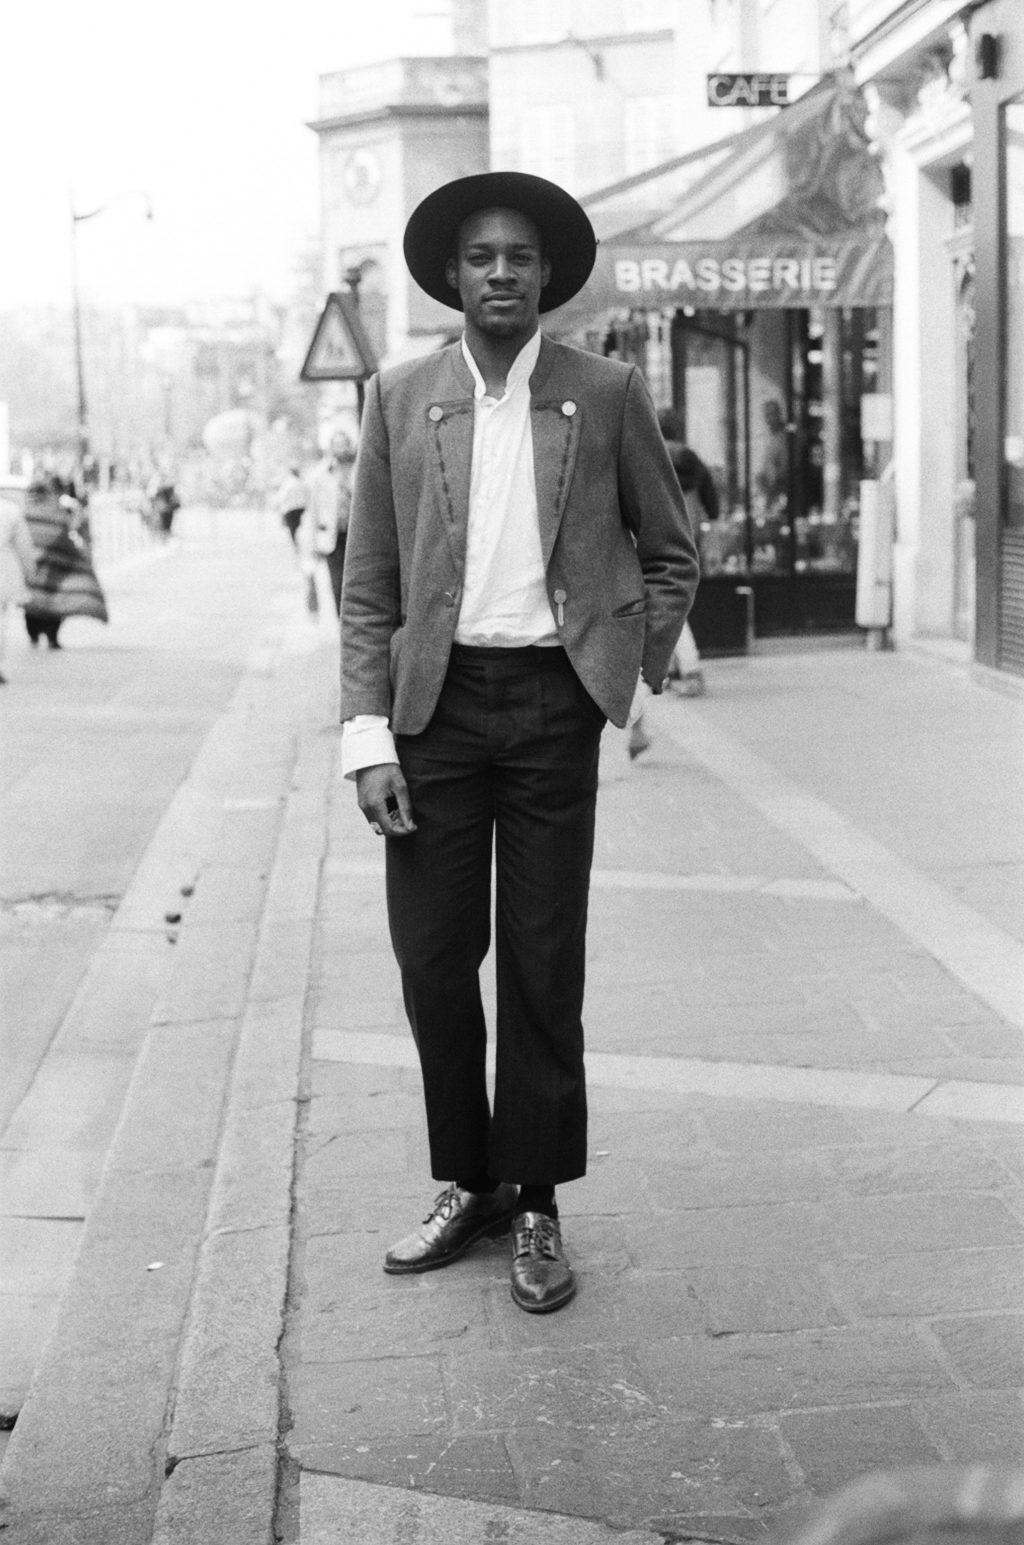 Photography by Justine Roland-Cal - Dandy, Rue Maufftard 2, Paris